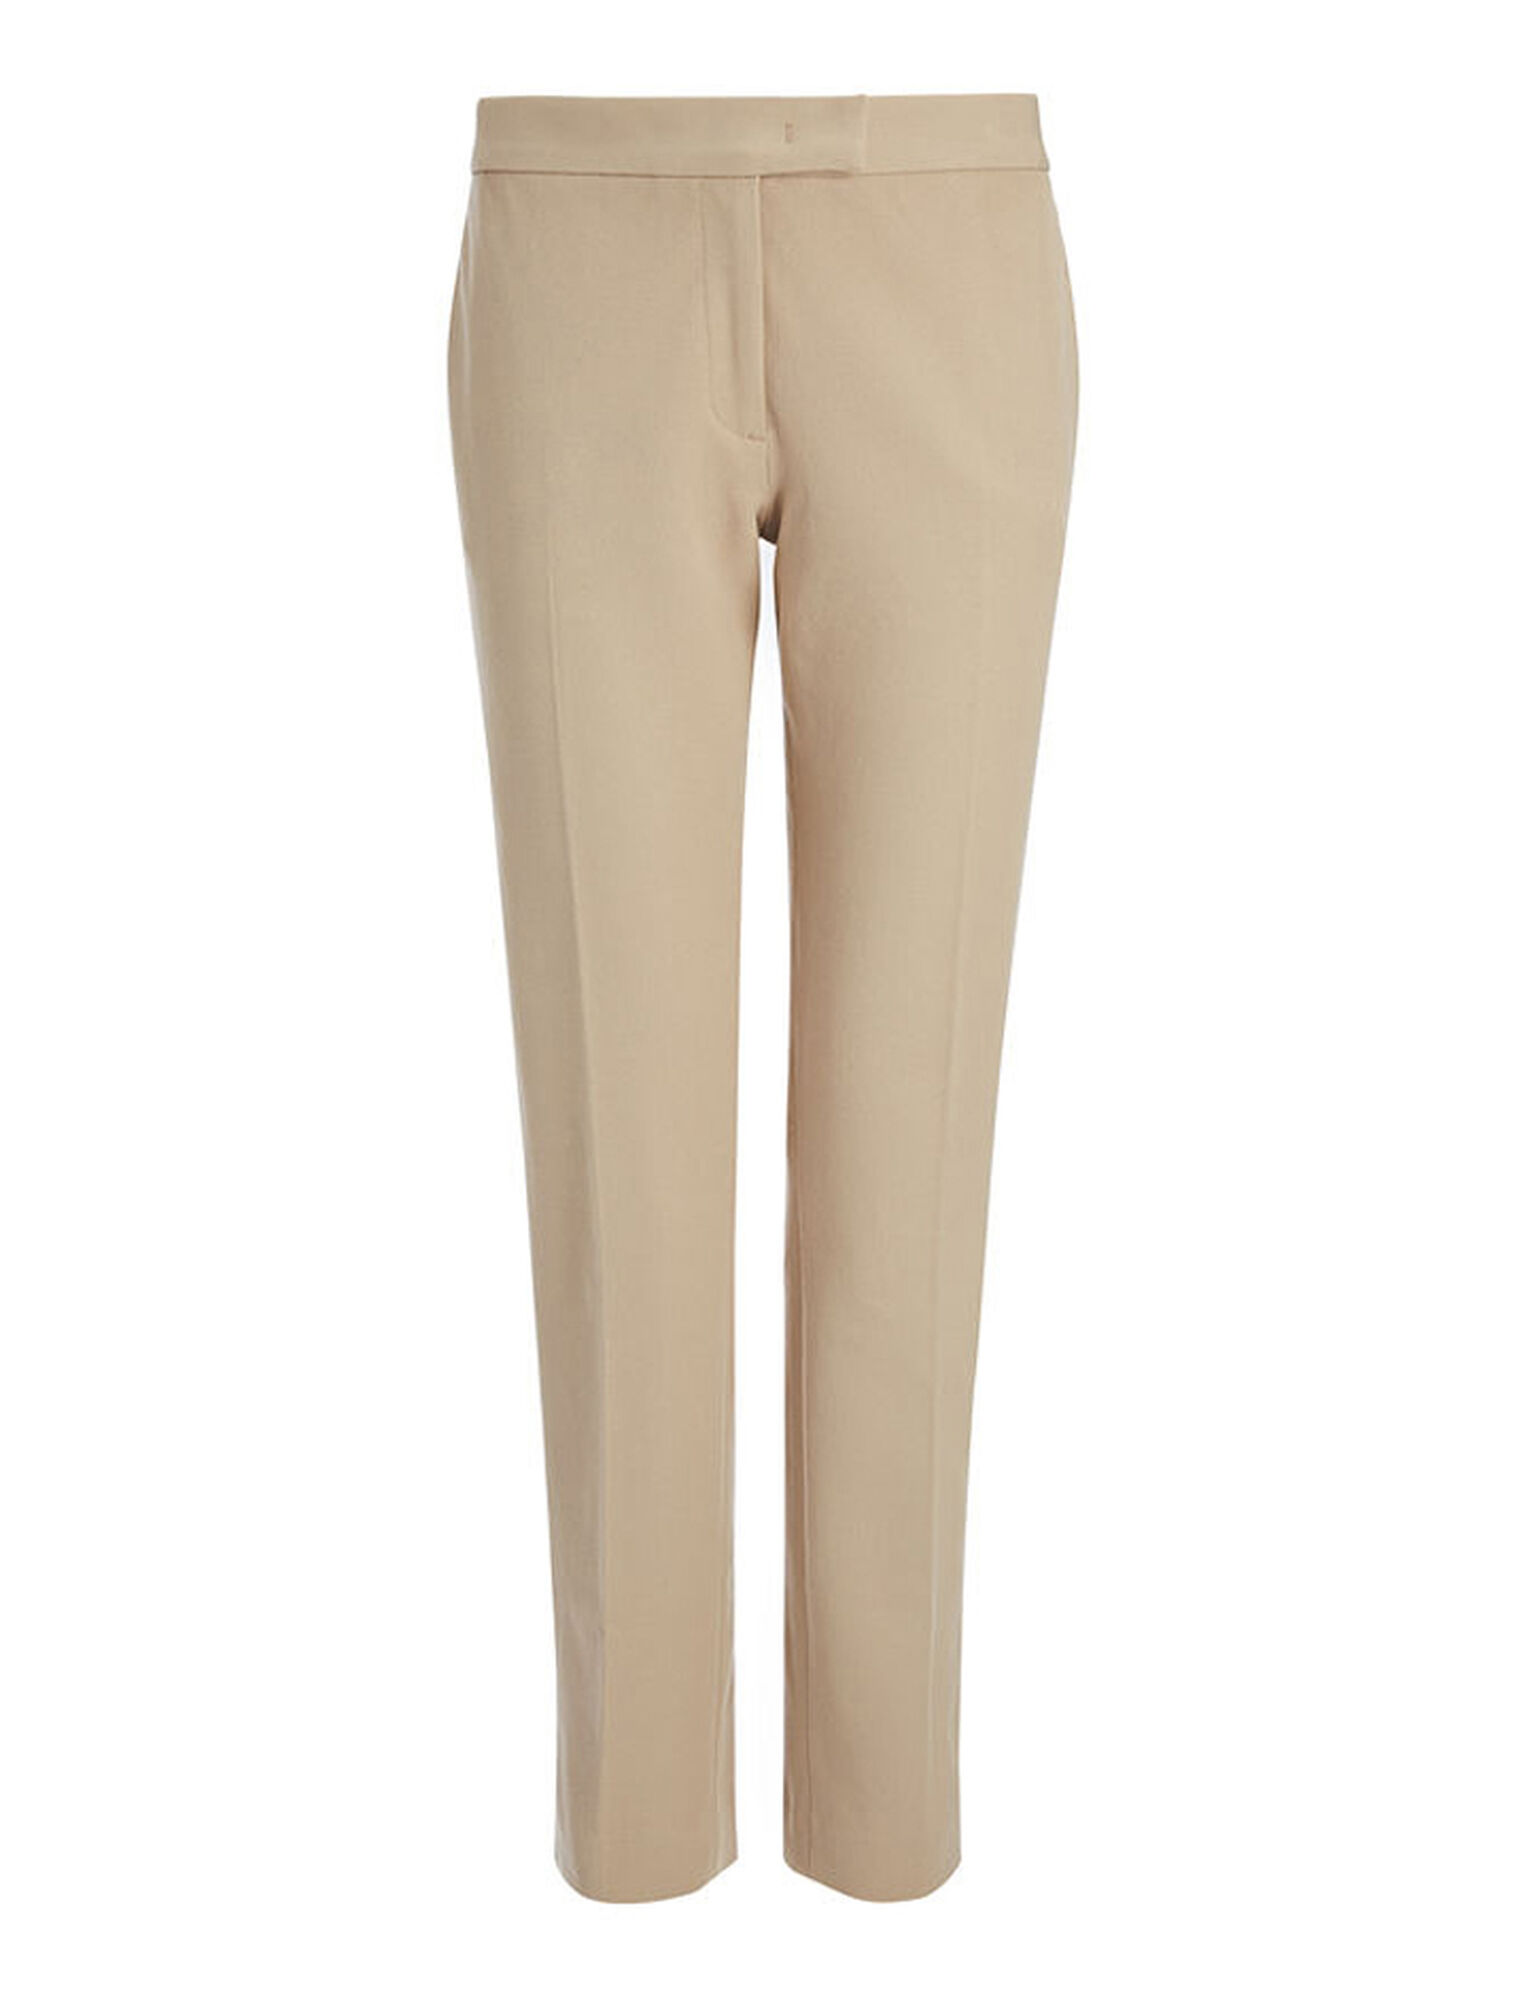 Joseph, Gabardine Stretch Finley Trouser, in BEIGE